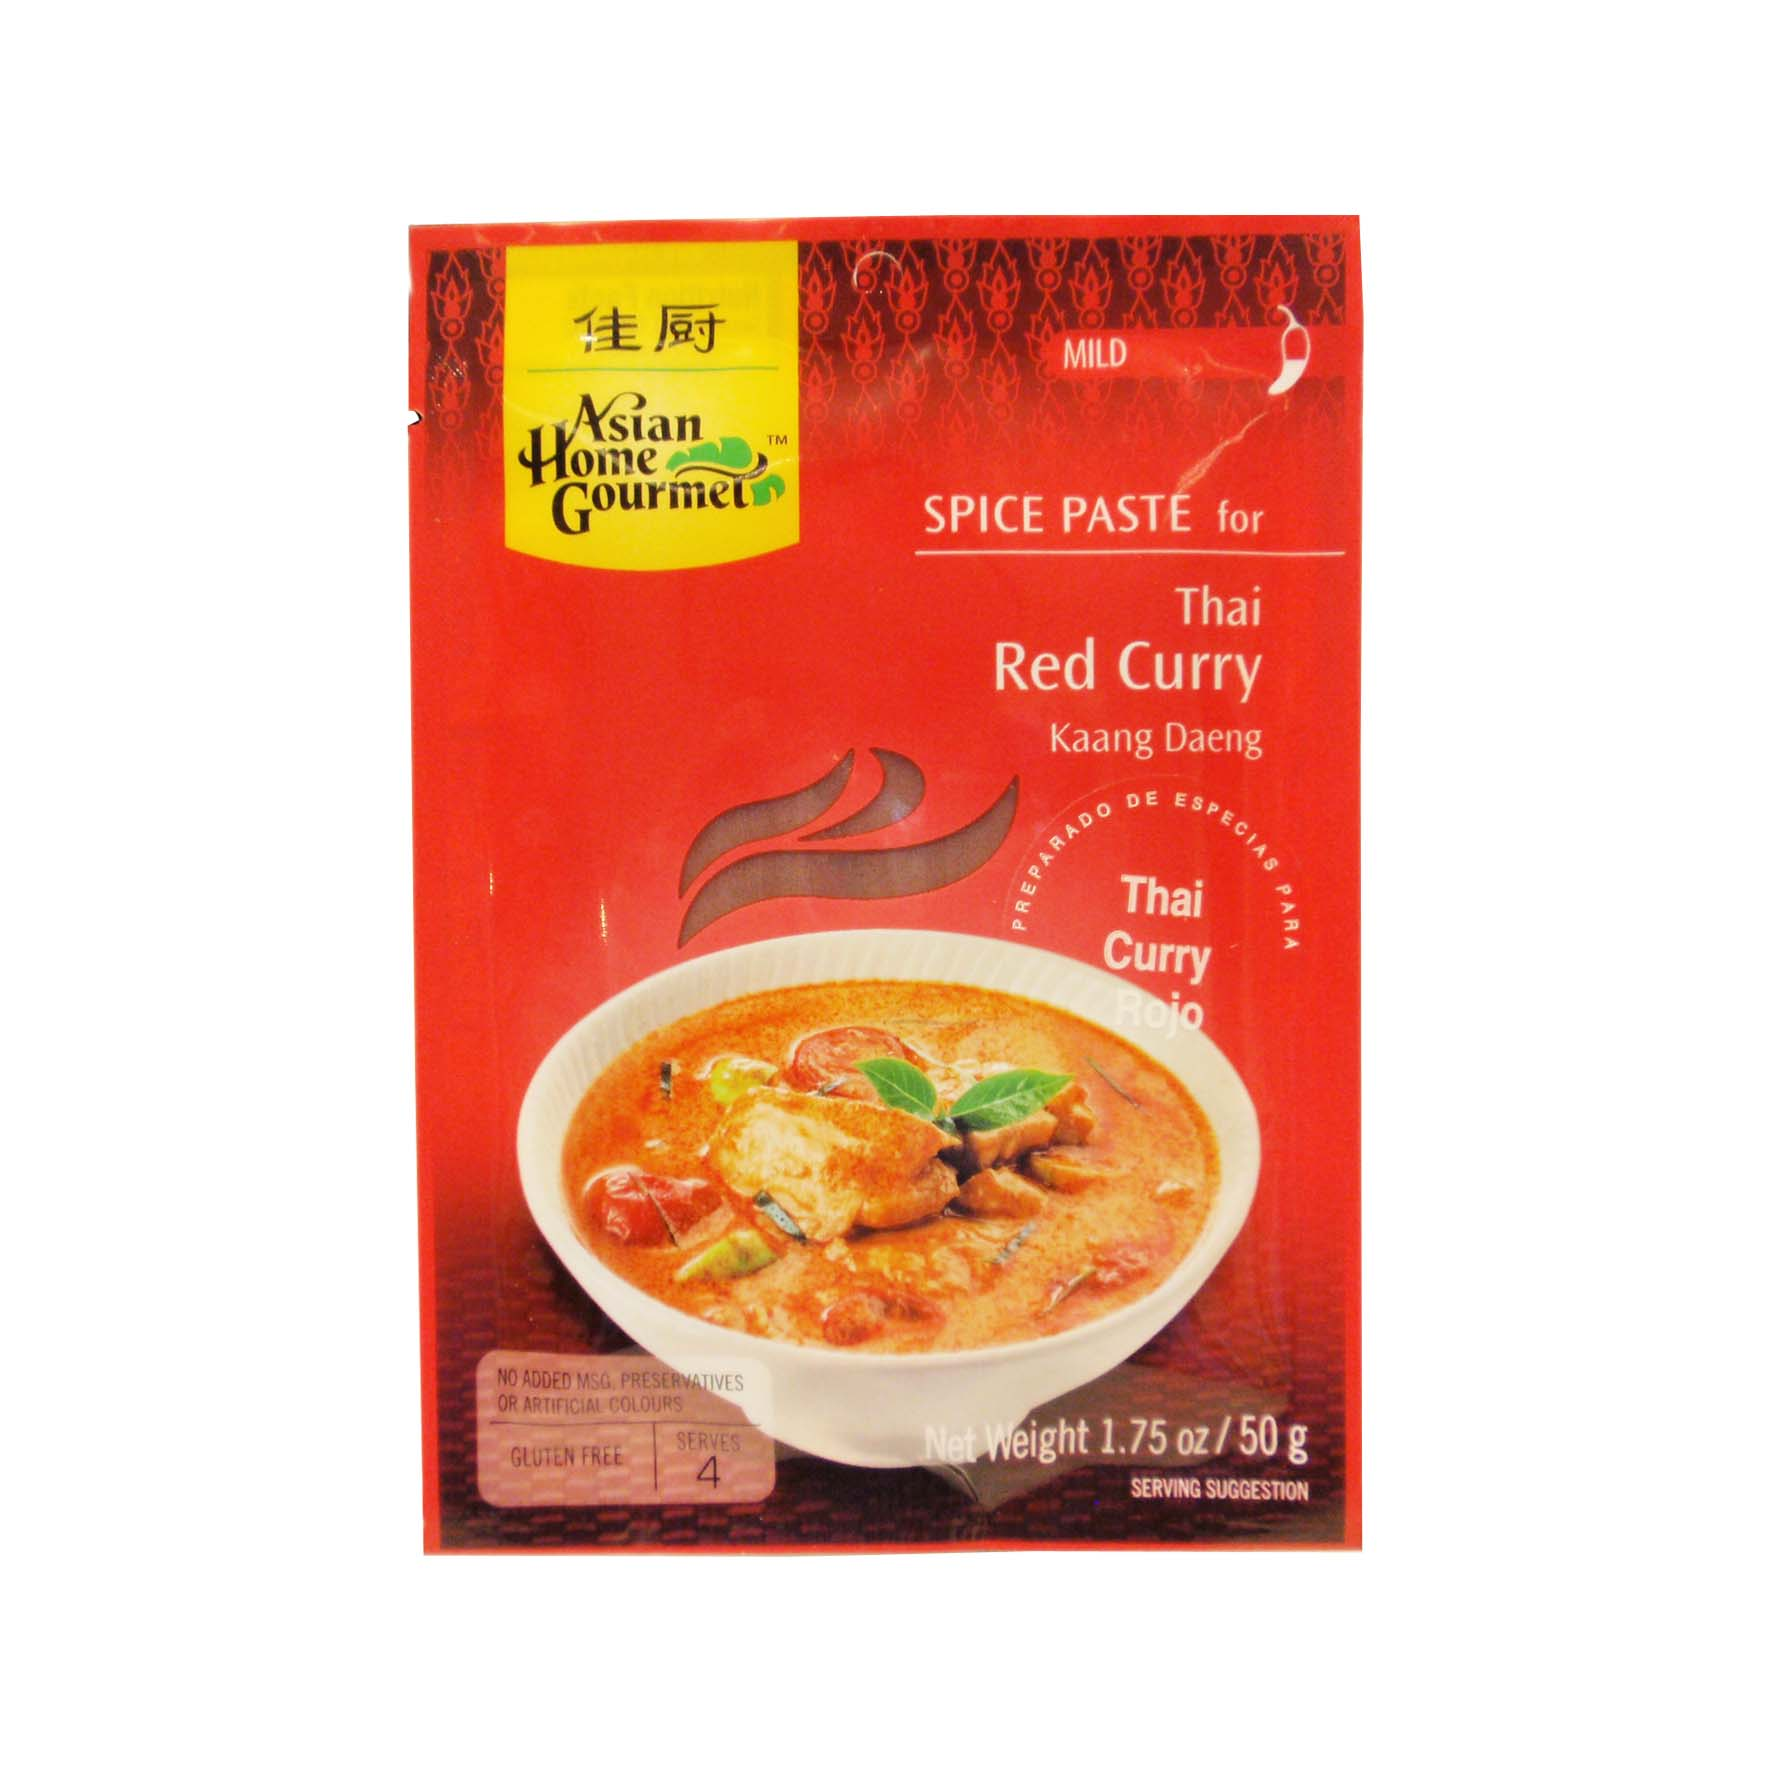 Ahg pasta para thai curry rojo 50gr